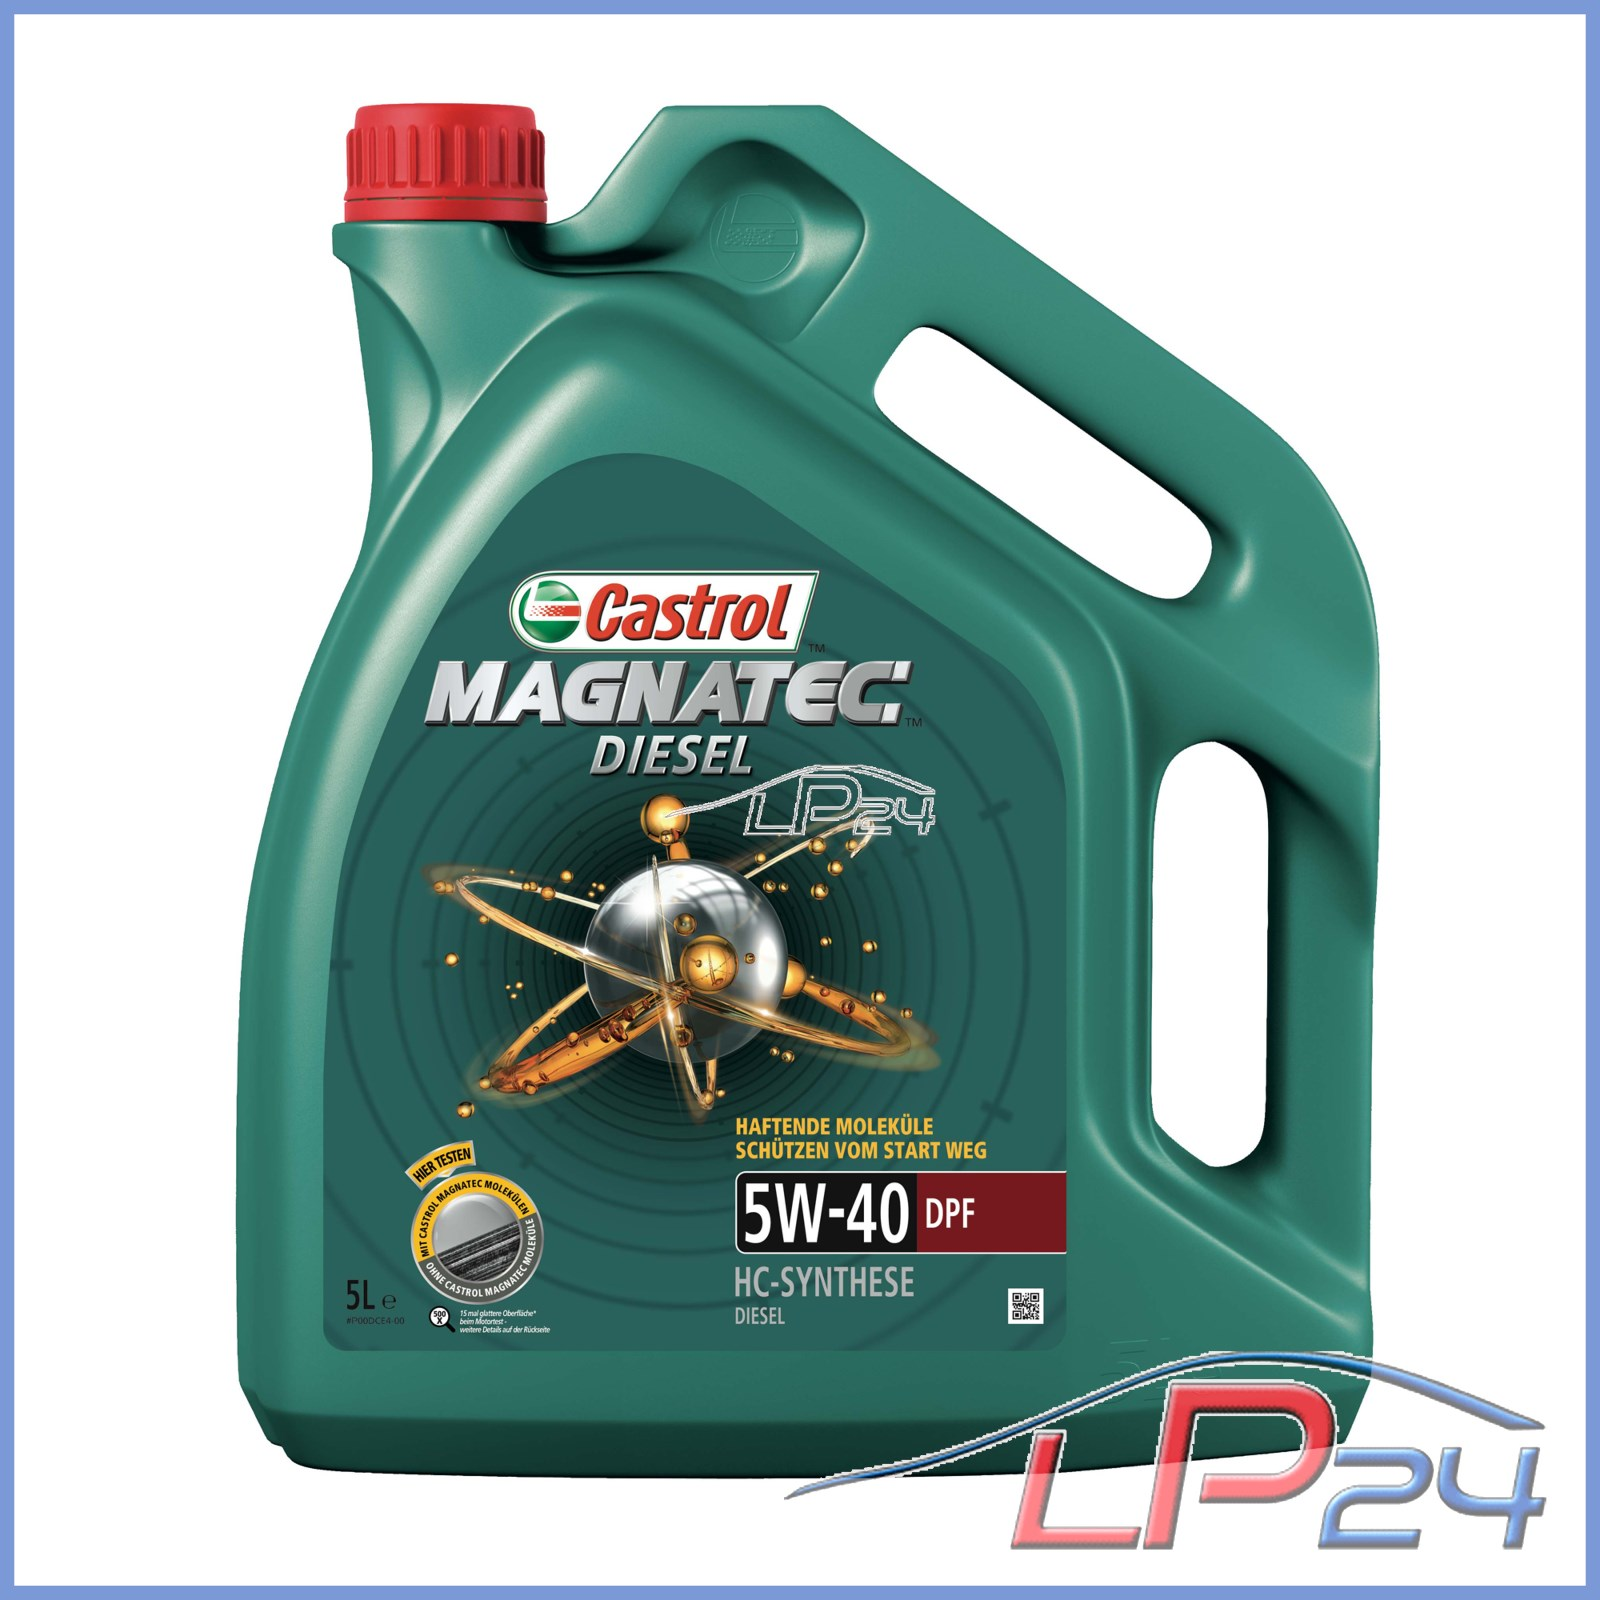 7 l litres 5w 40 dpf castrol magnatec diesel huile de moteur vw 505 00 ebay. Black Bedroom Furniture Sets. Home Design Ideas